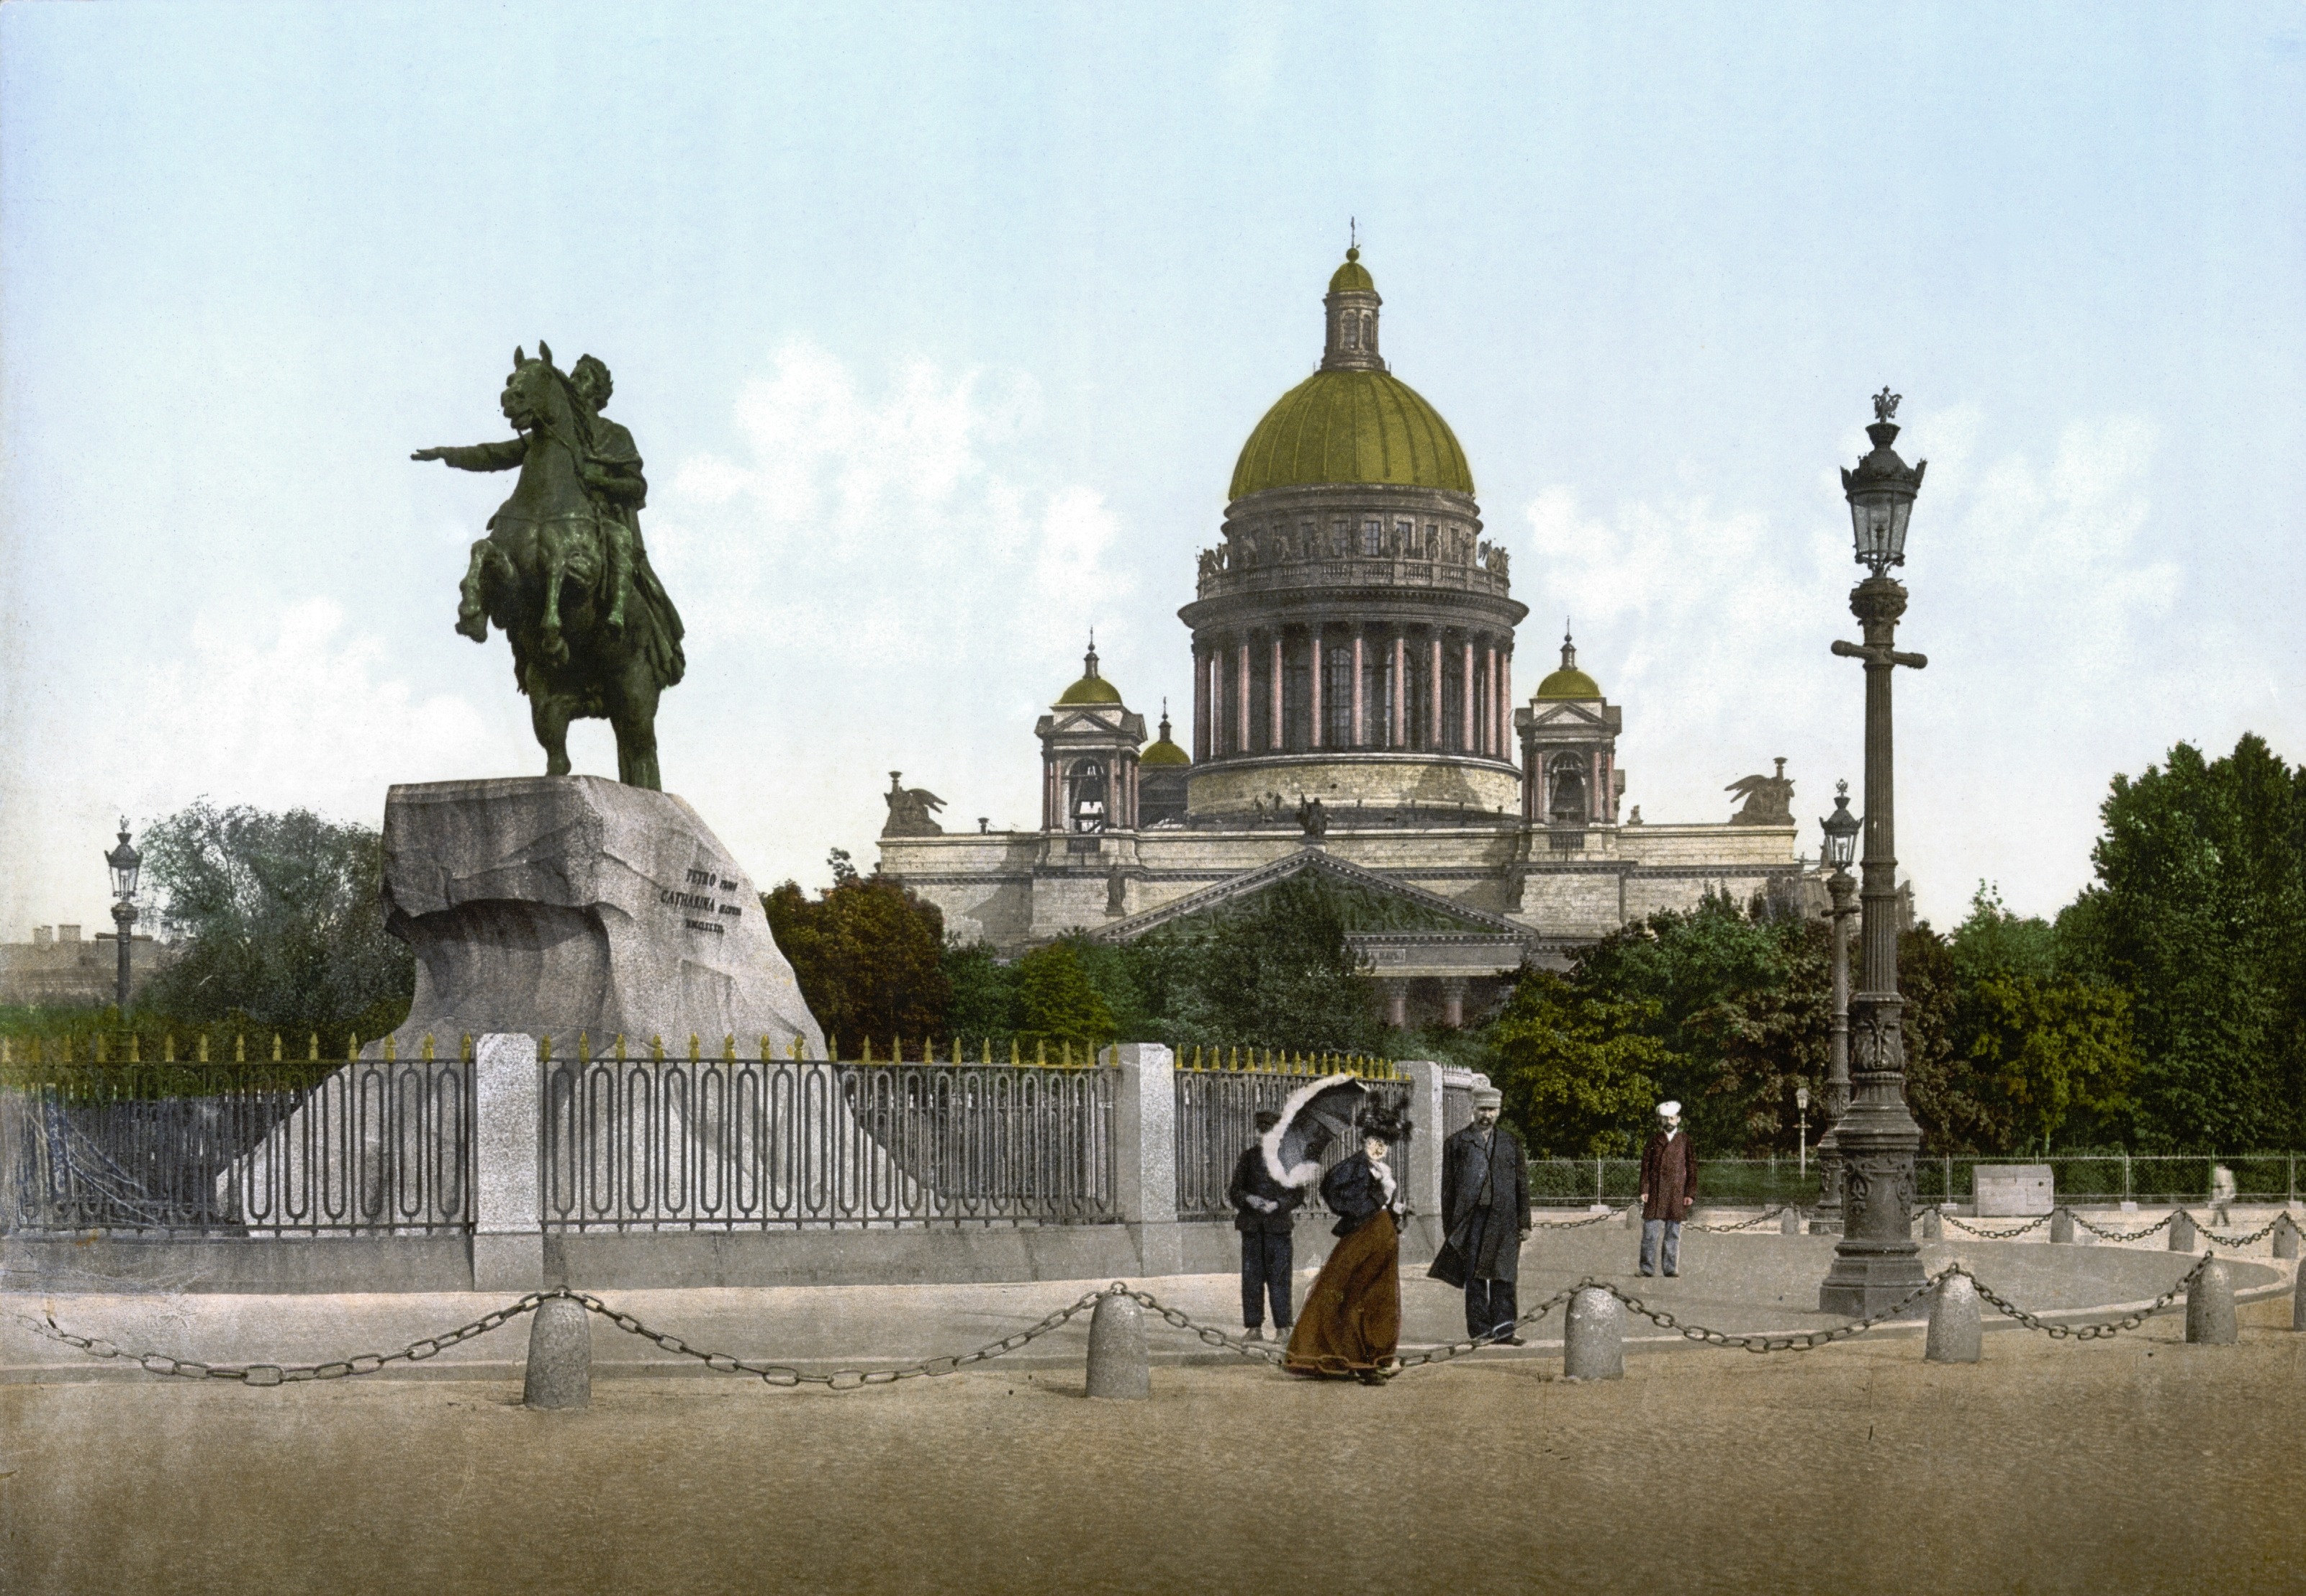 The 1782 statue of Peter I in Saint Petersburg, informally known as the Bronze Horseman.